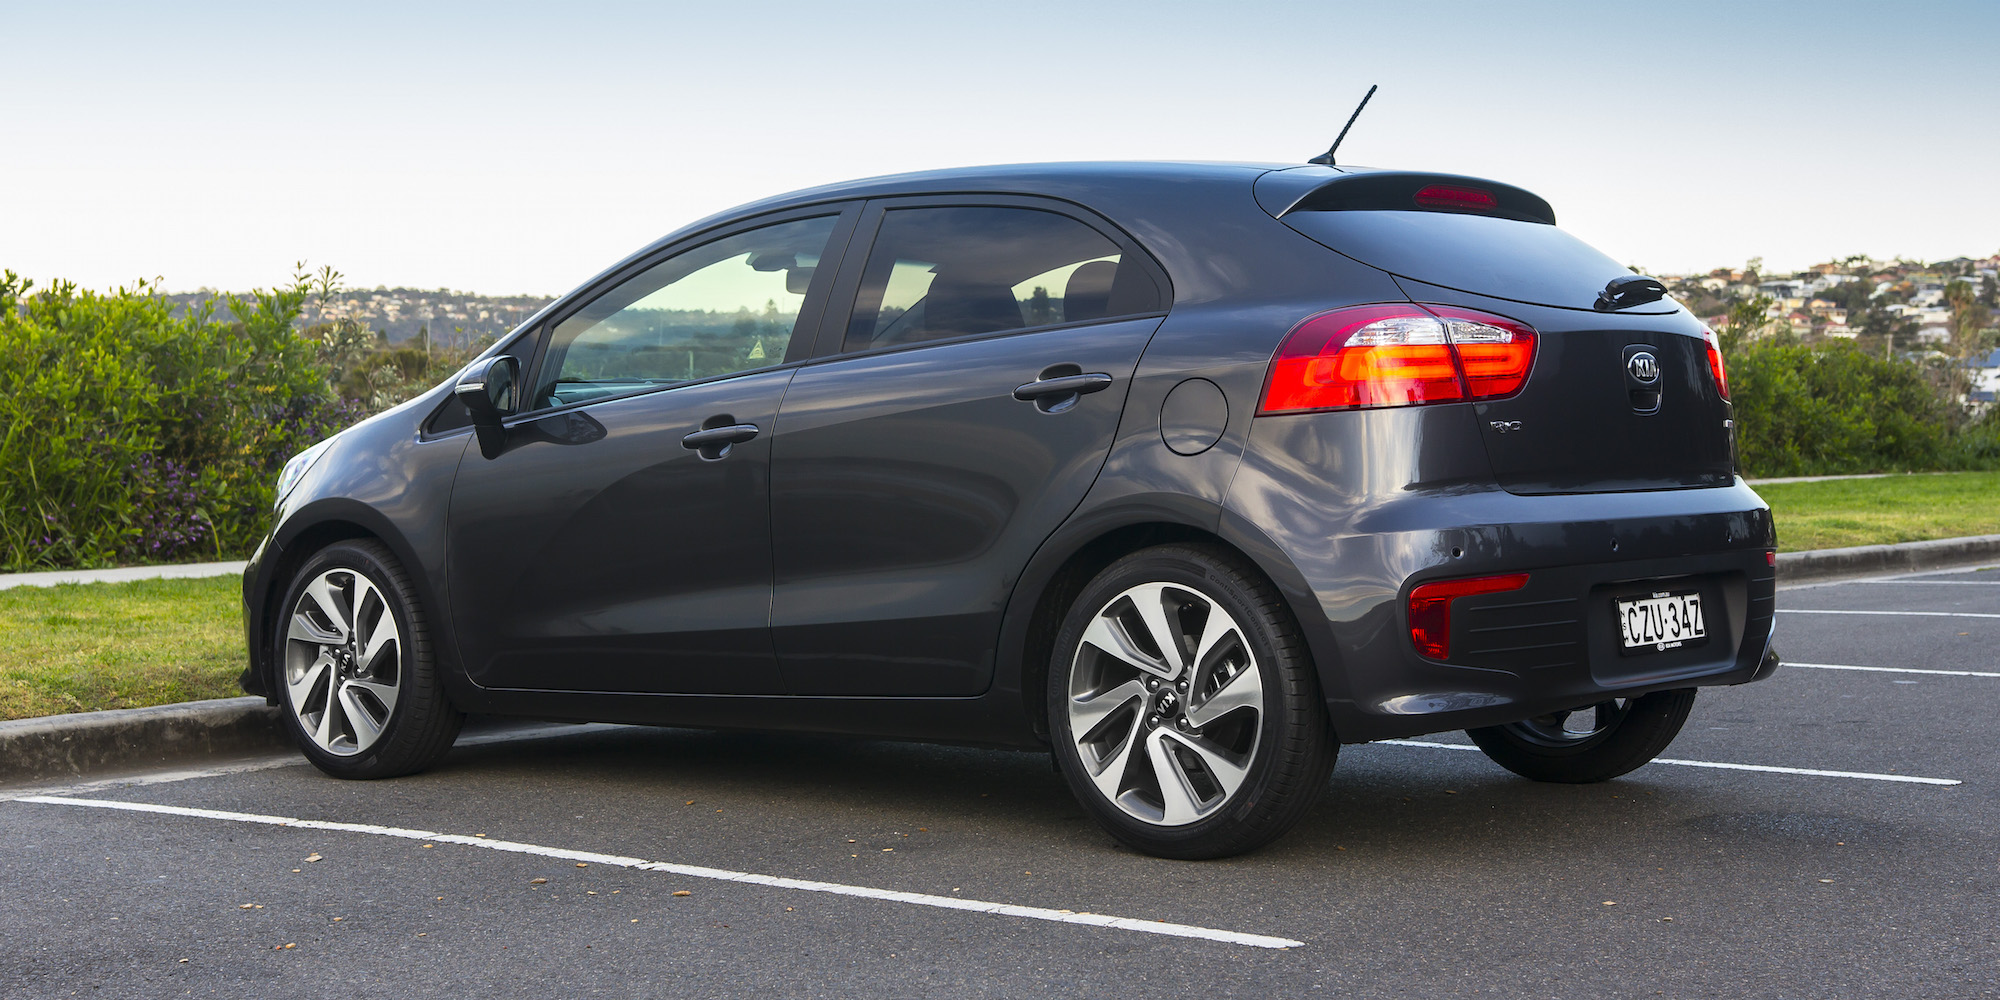 kia rio 2015 hatchback review autos post. Black Bedroom Furniture Sets. Home Design Ideas